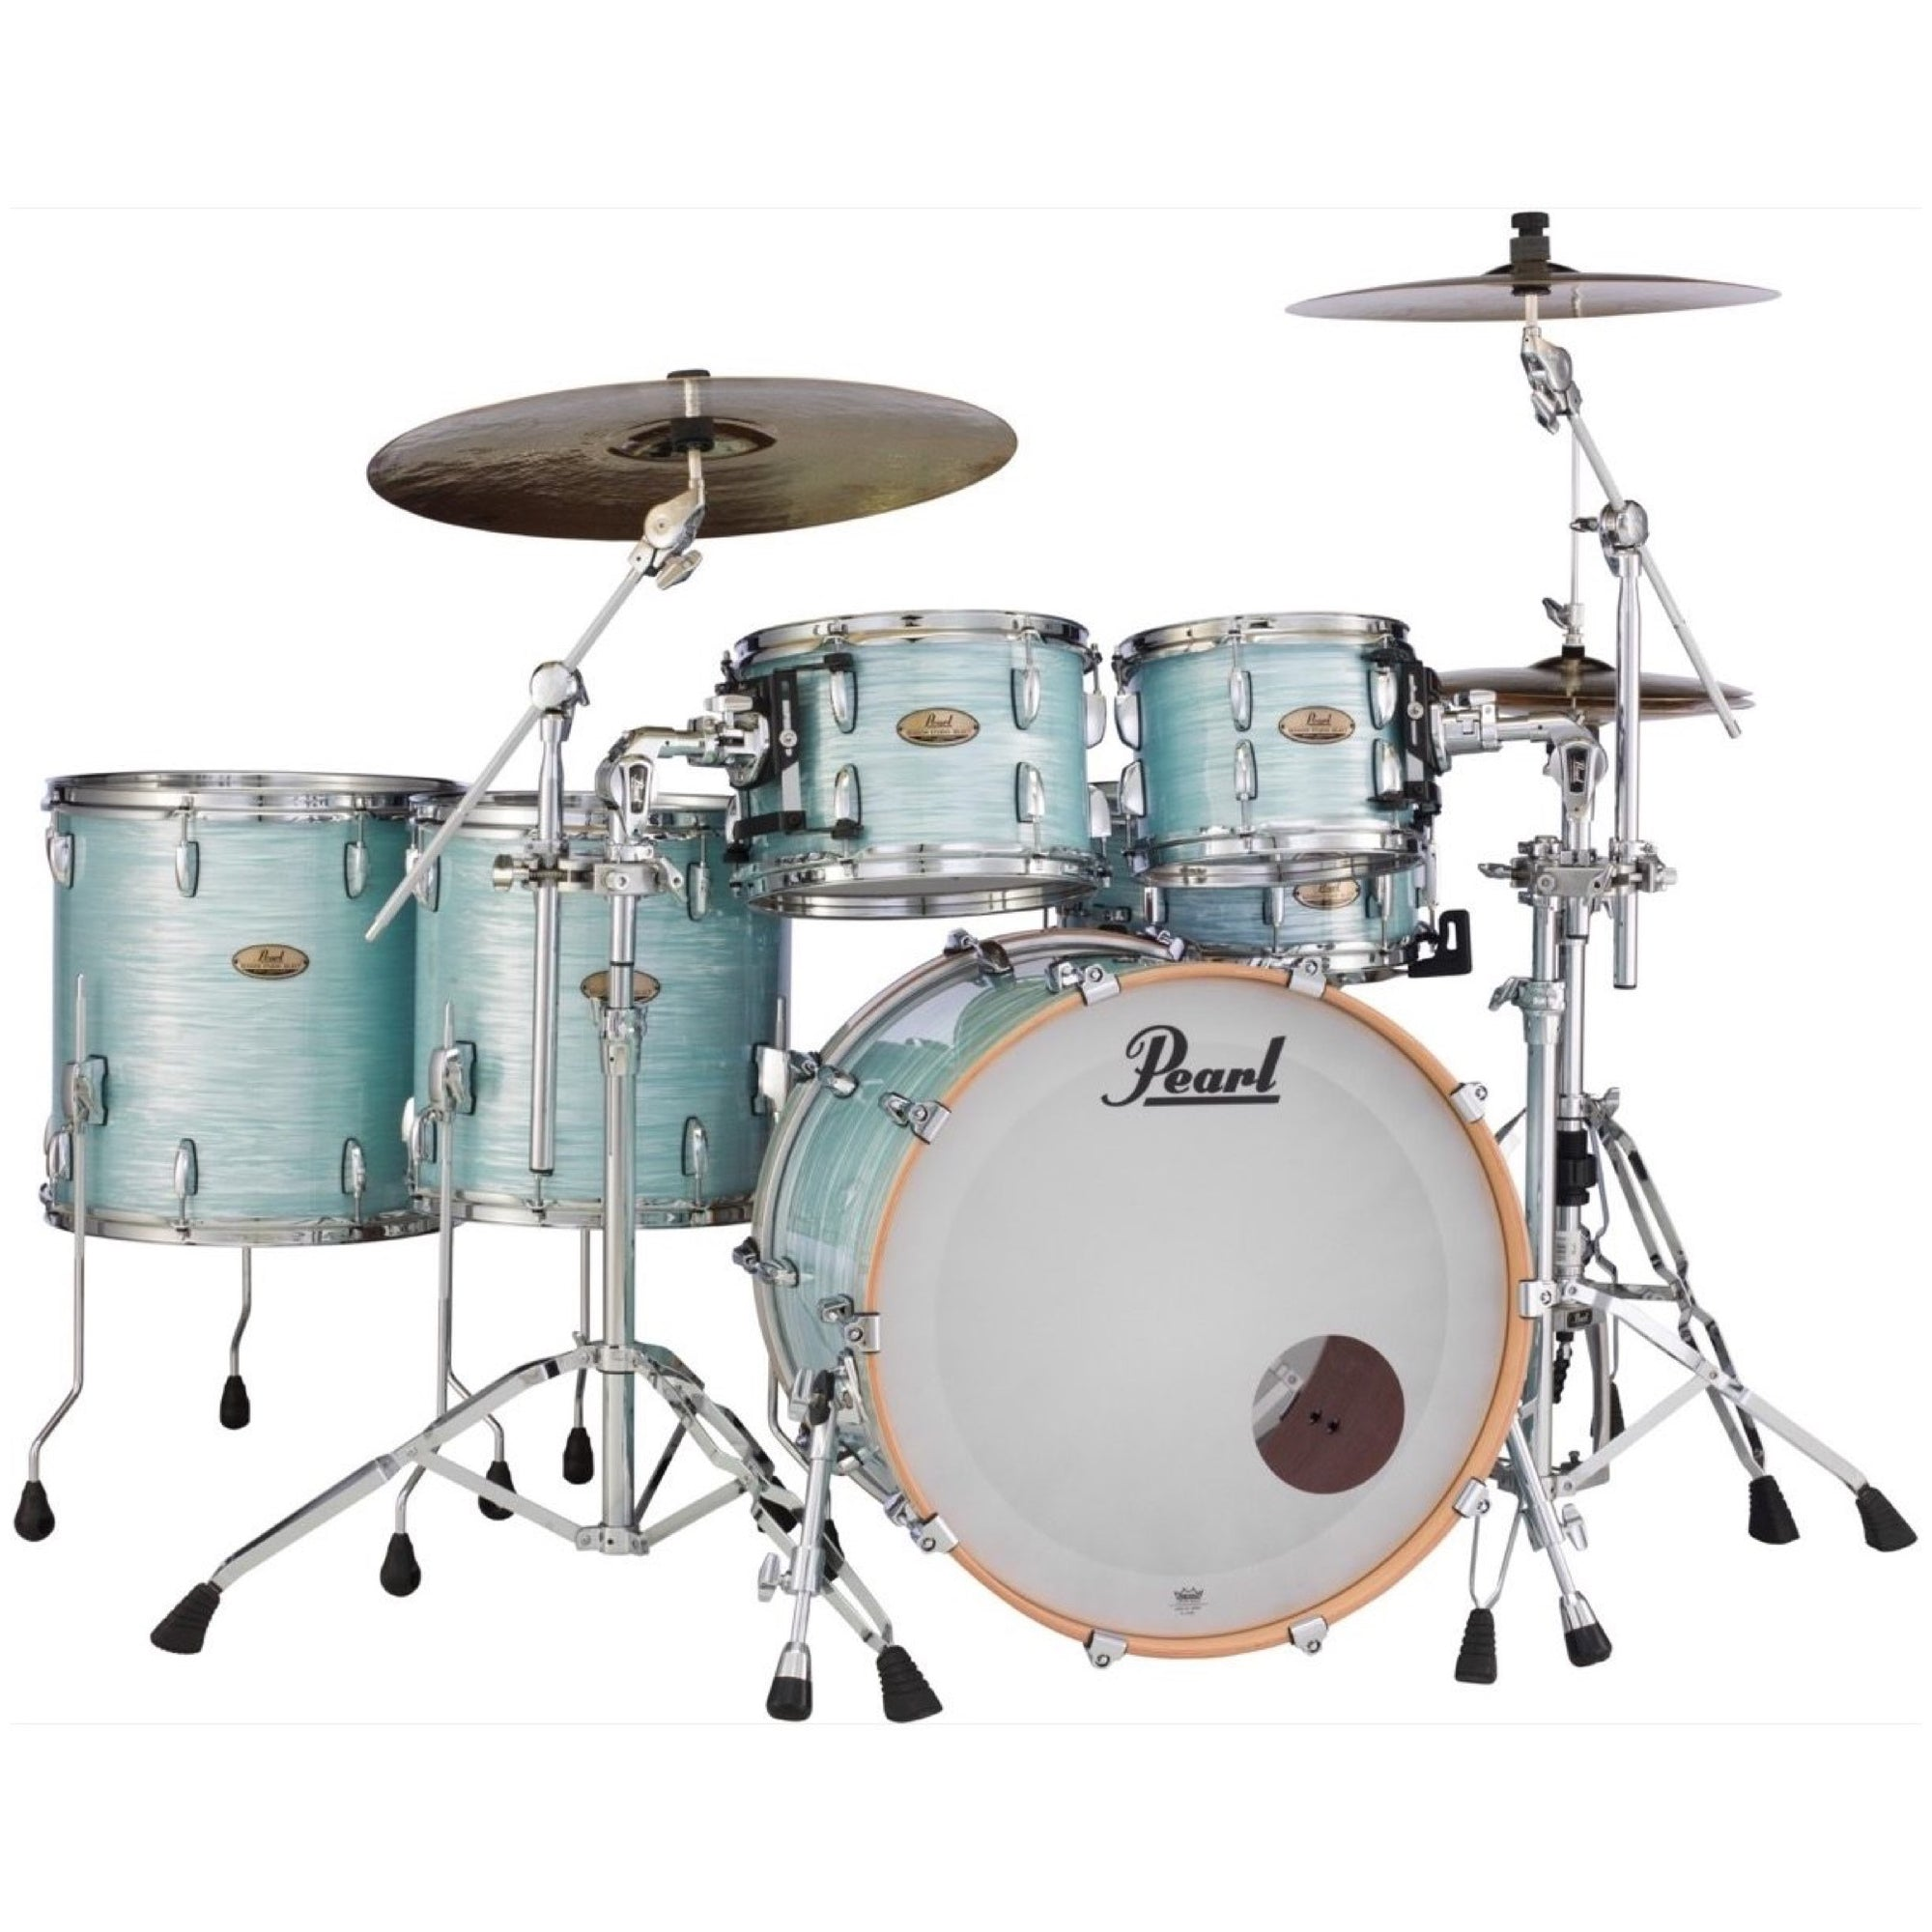 Pearl Session Studio Select Drum Shell Kit, 5-Piece, Ice Blue Oyster